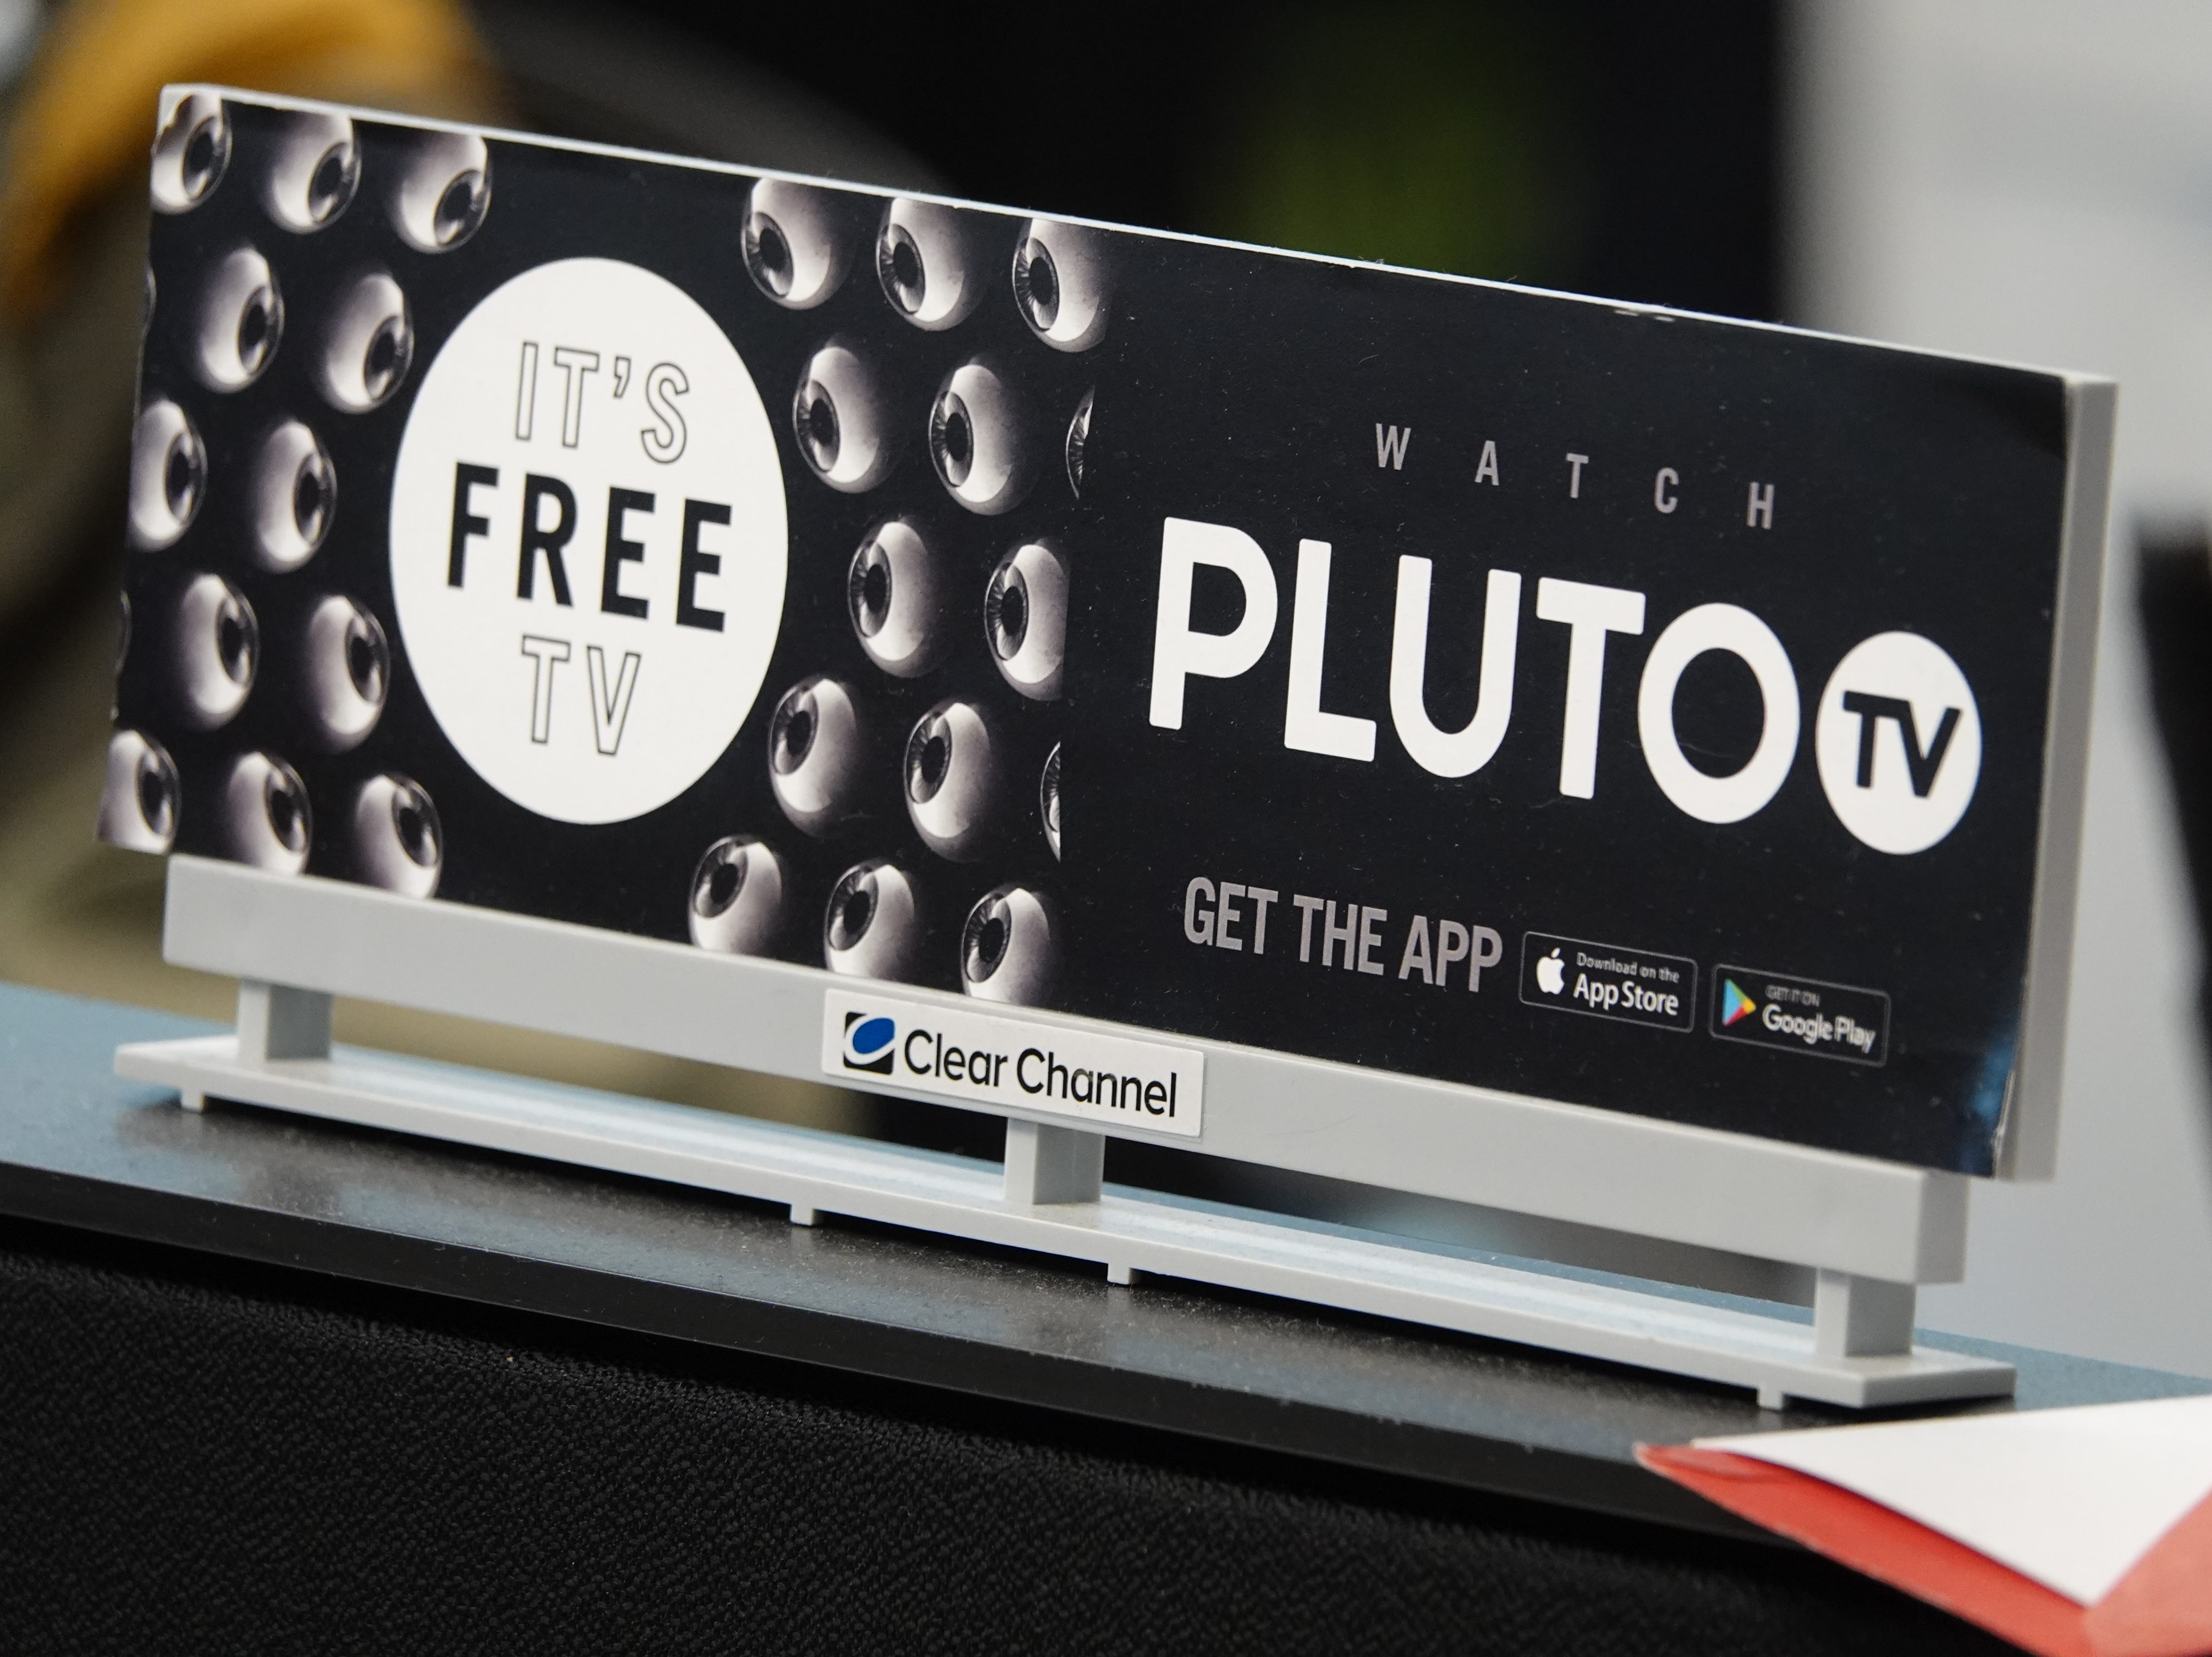 A Pluto.TV billboard points out that programming is free with the app